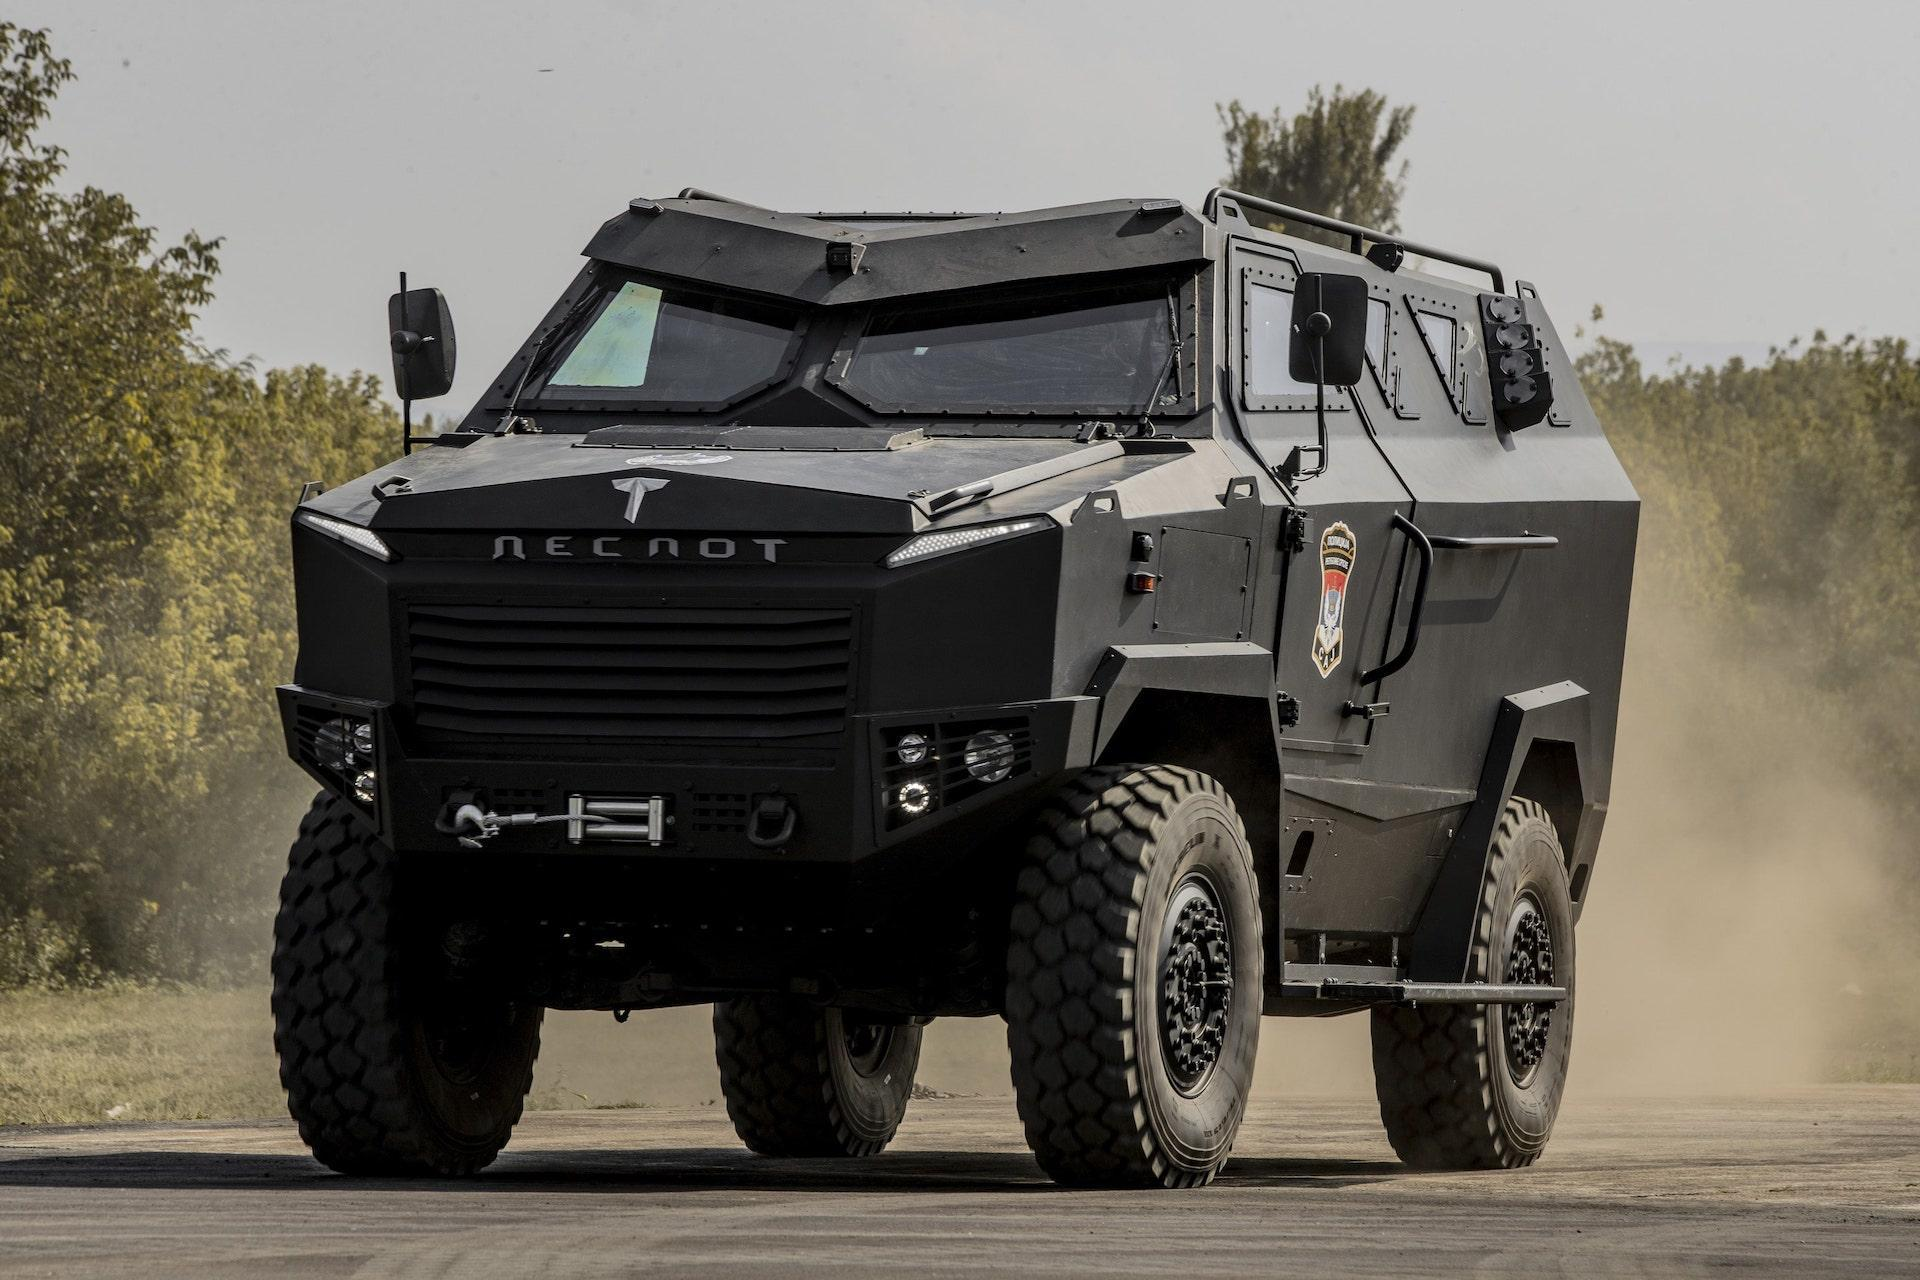 TRB Despot APC was designed and manufactured in TRB, Bosnia and Herzegovina